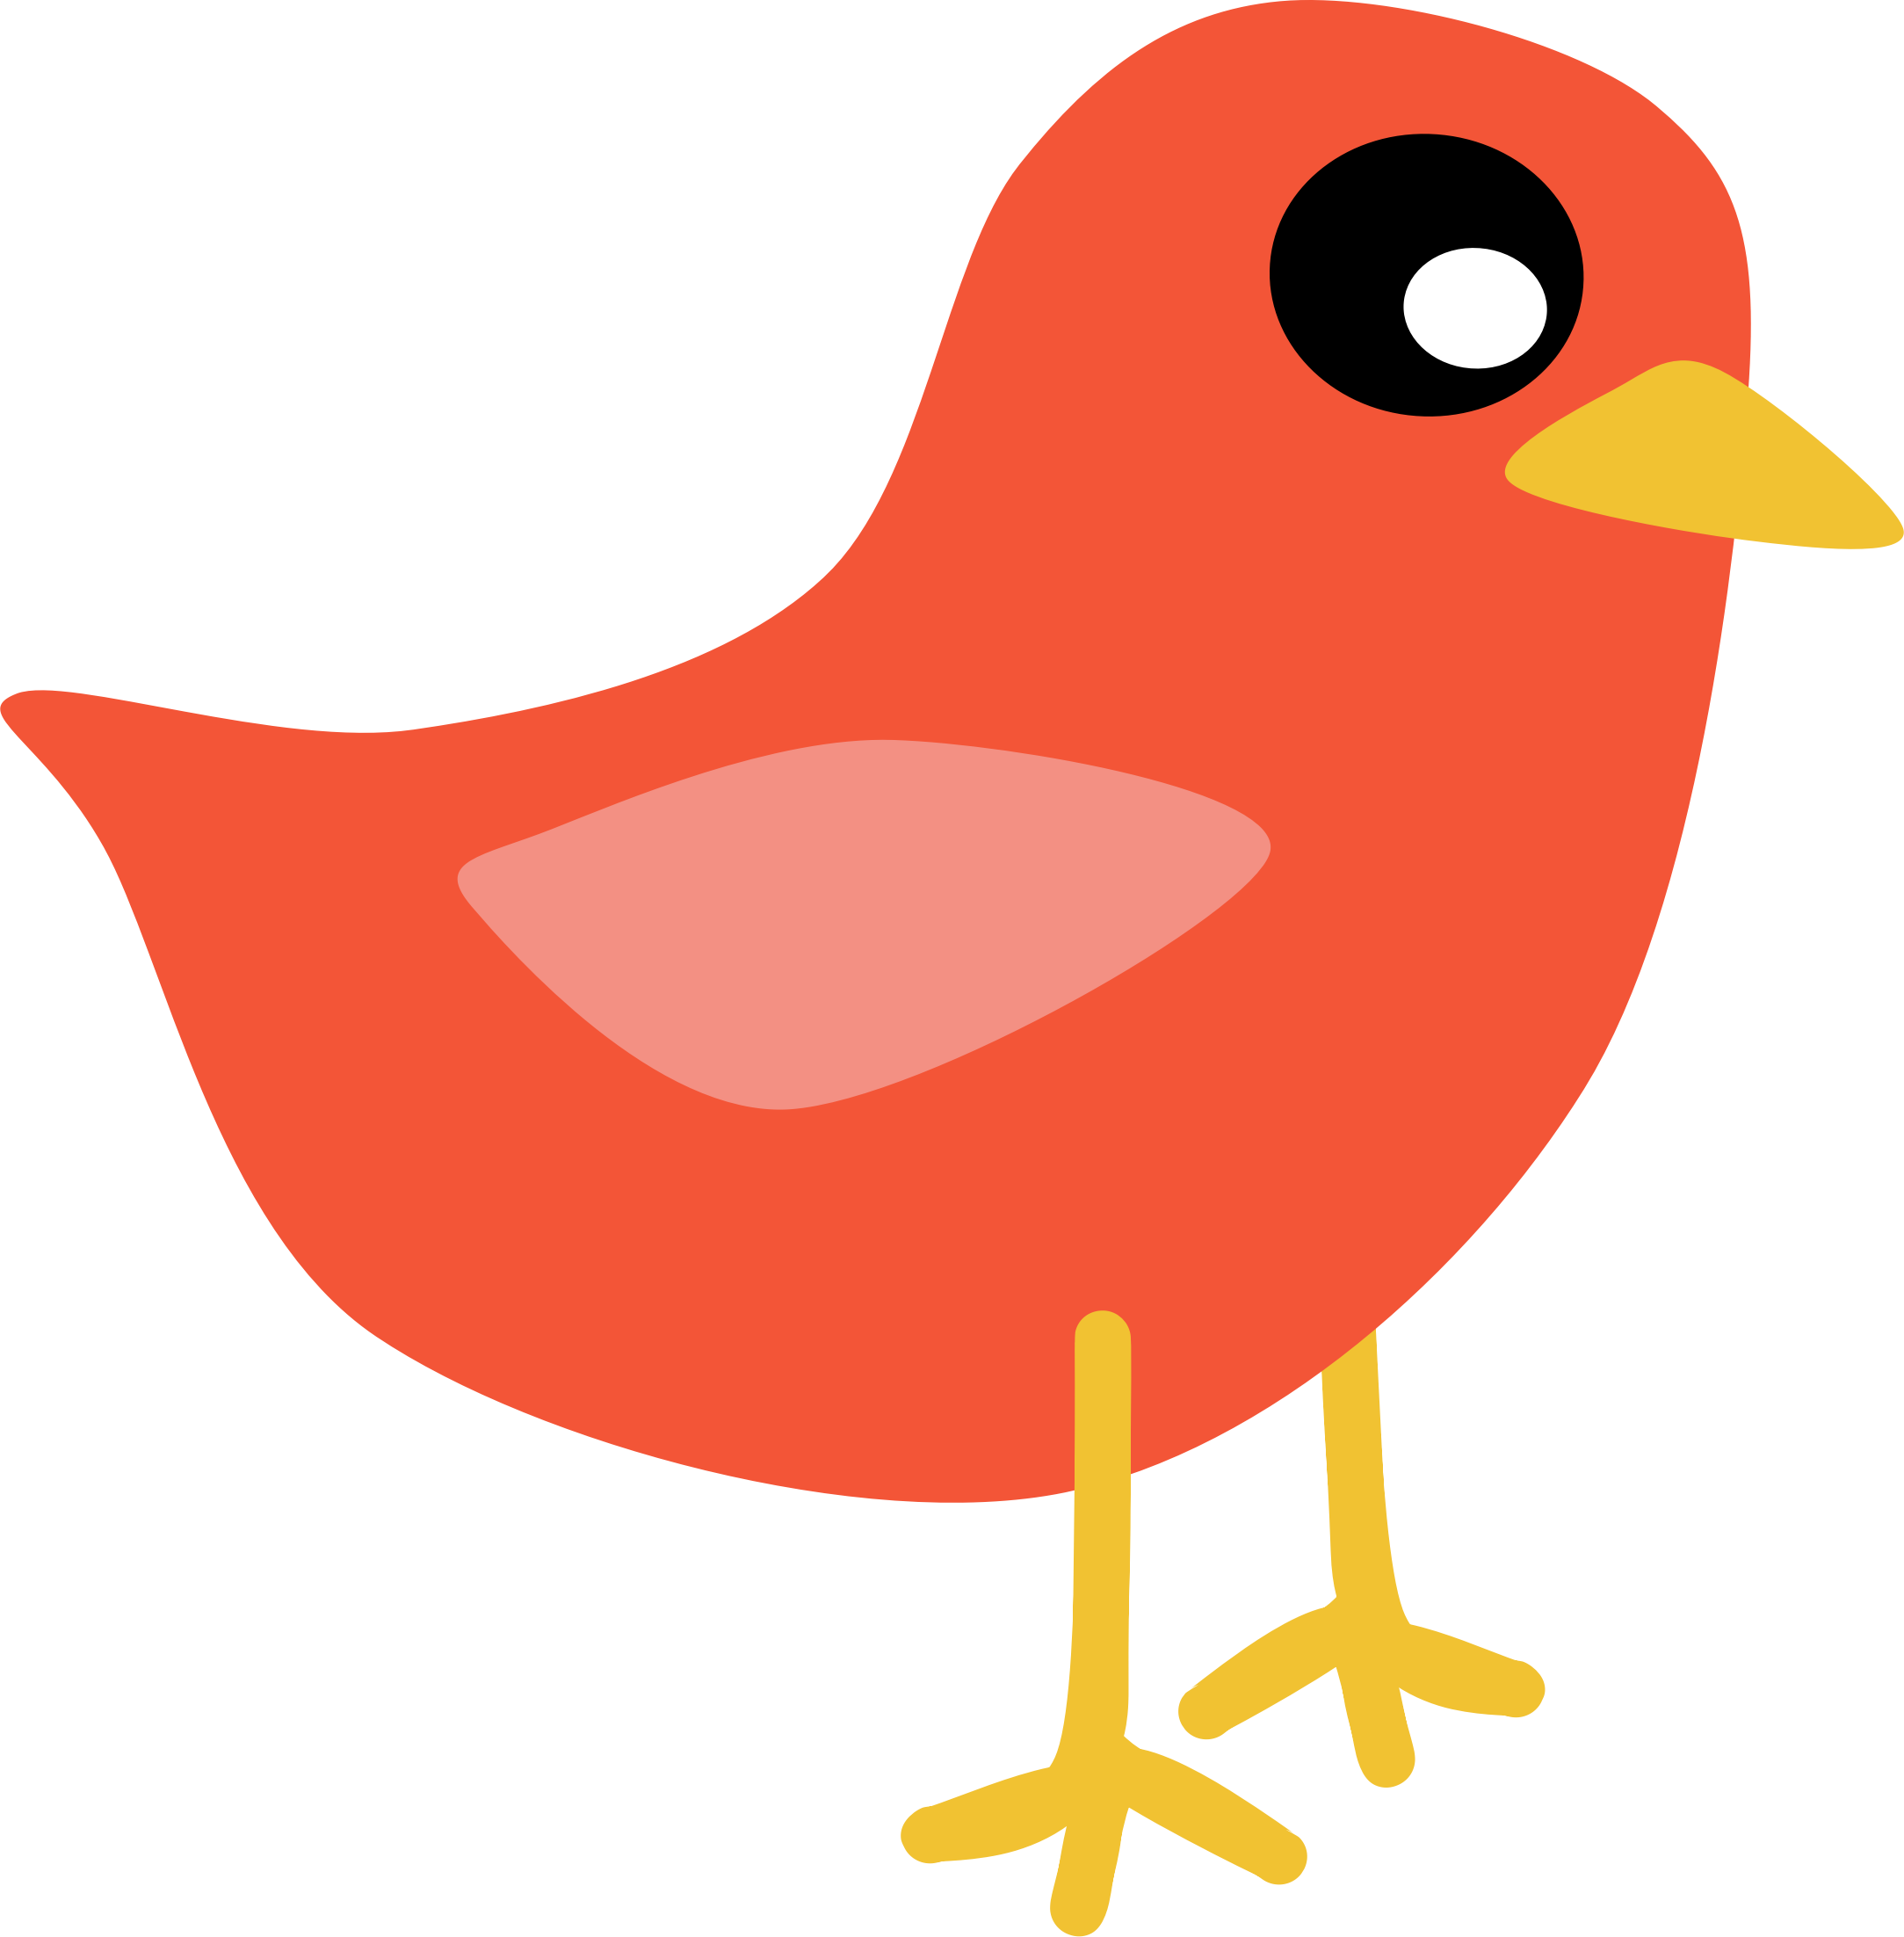 Realistic bird clipart side banner library stock Red Bird Clipart | Free download best Red Bird Clipart on ... banner library stock